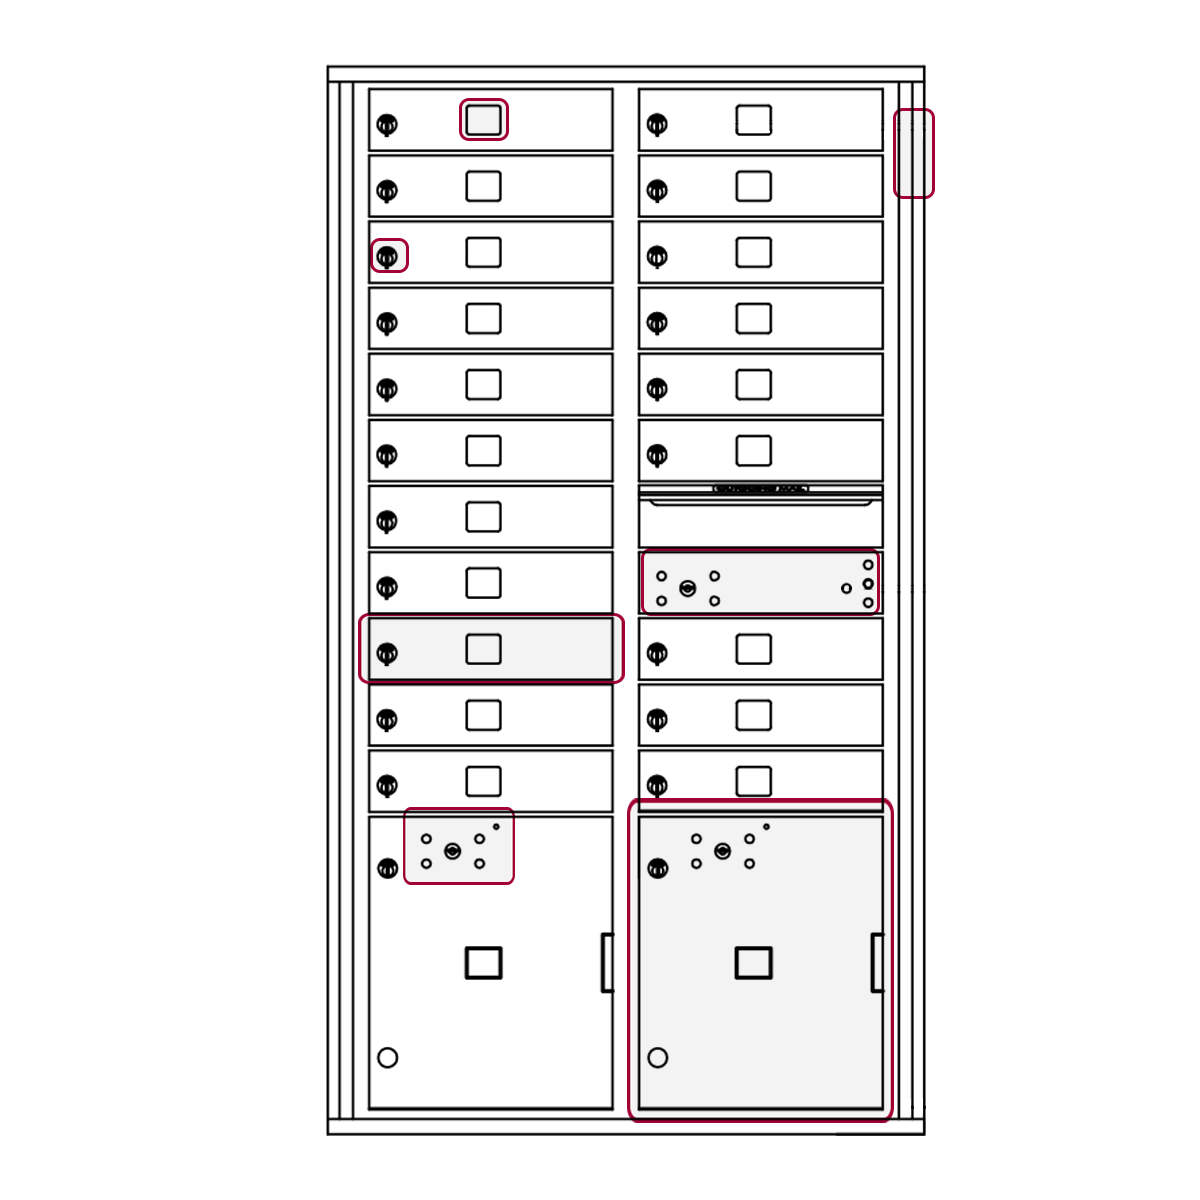 Mailbox Key Diagram Trusted Wiring Diagrams 1999 F350 Fuse Box Parts List Std 4c Mailboxes Florence Rh Florencemailboxes Com Cab Panel